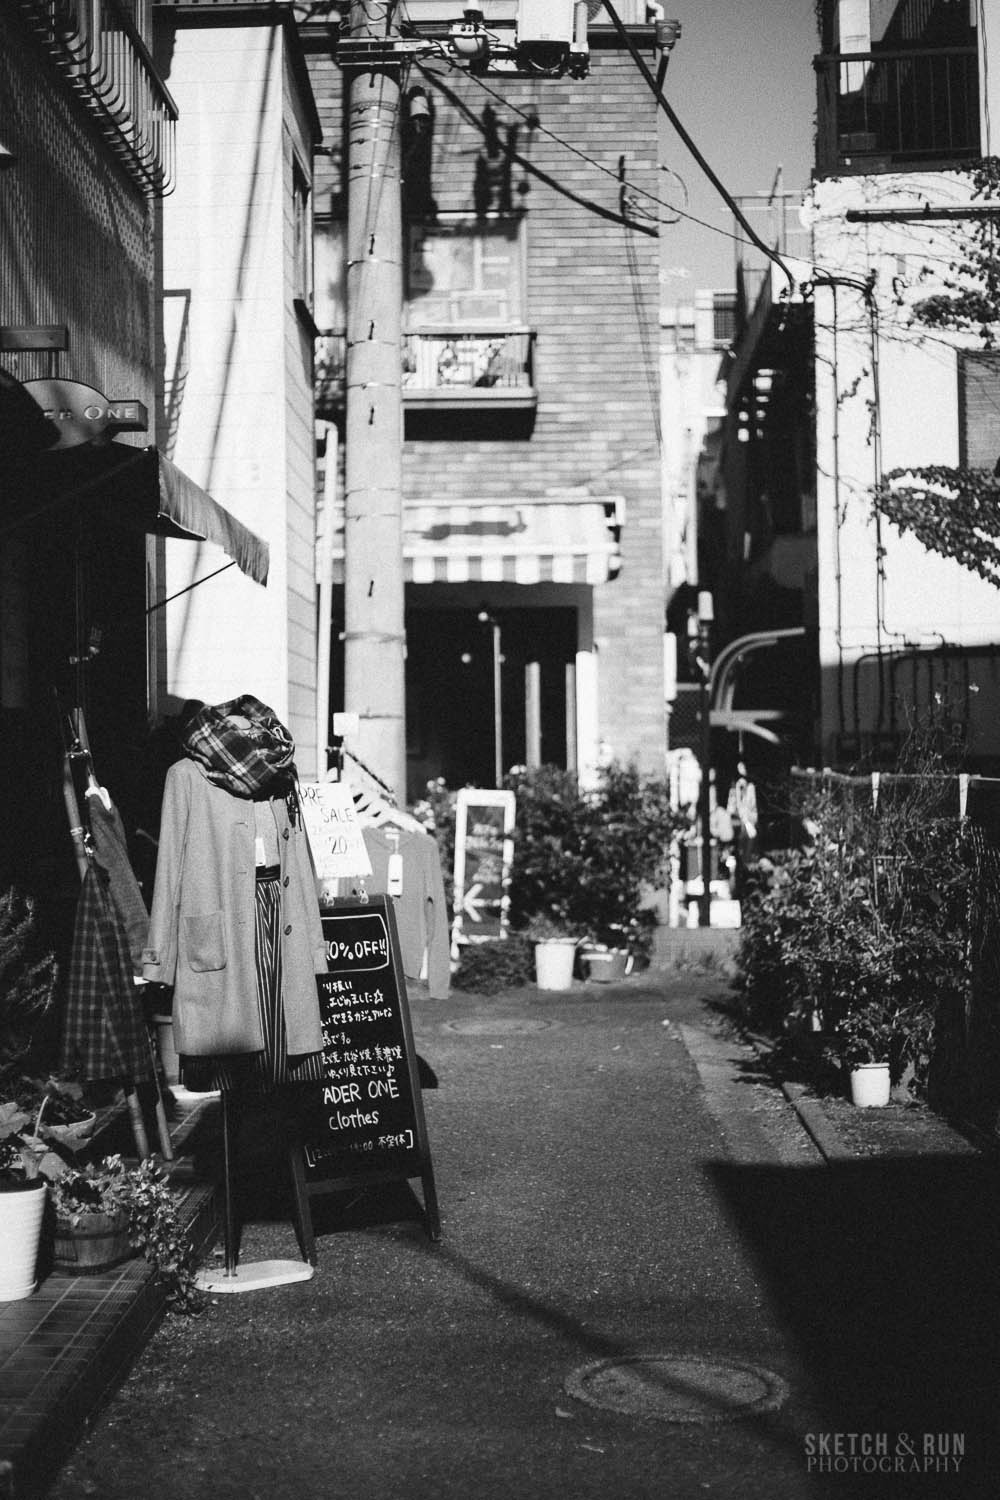 shimokitazawa, tokyo, japan, travel, travel photography, sketch and run, 下北沢, 東京